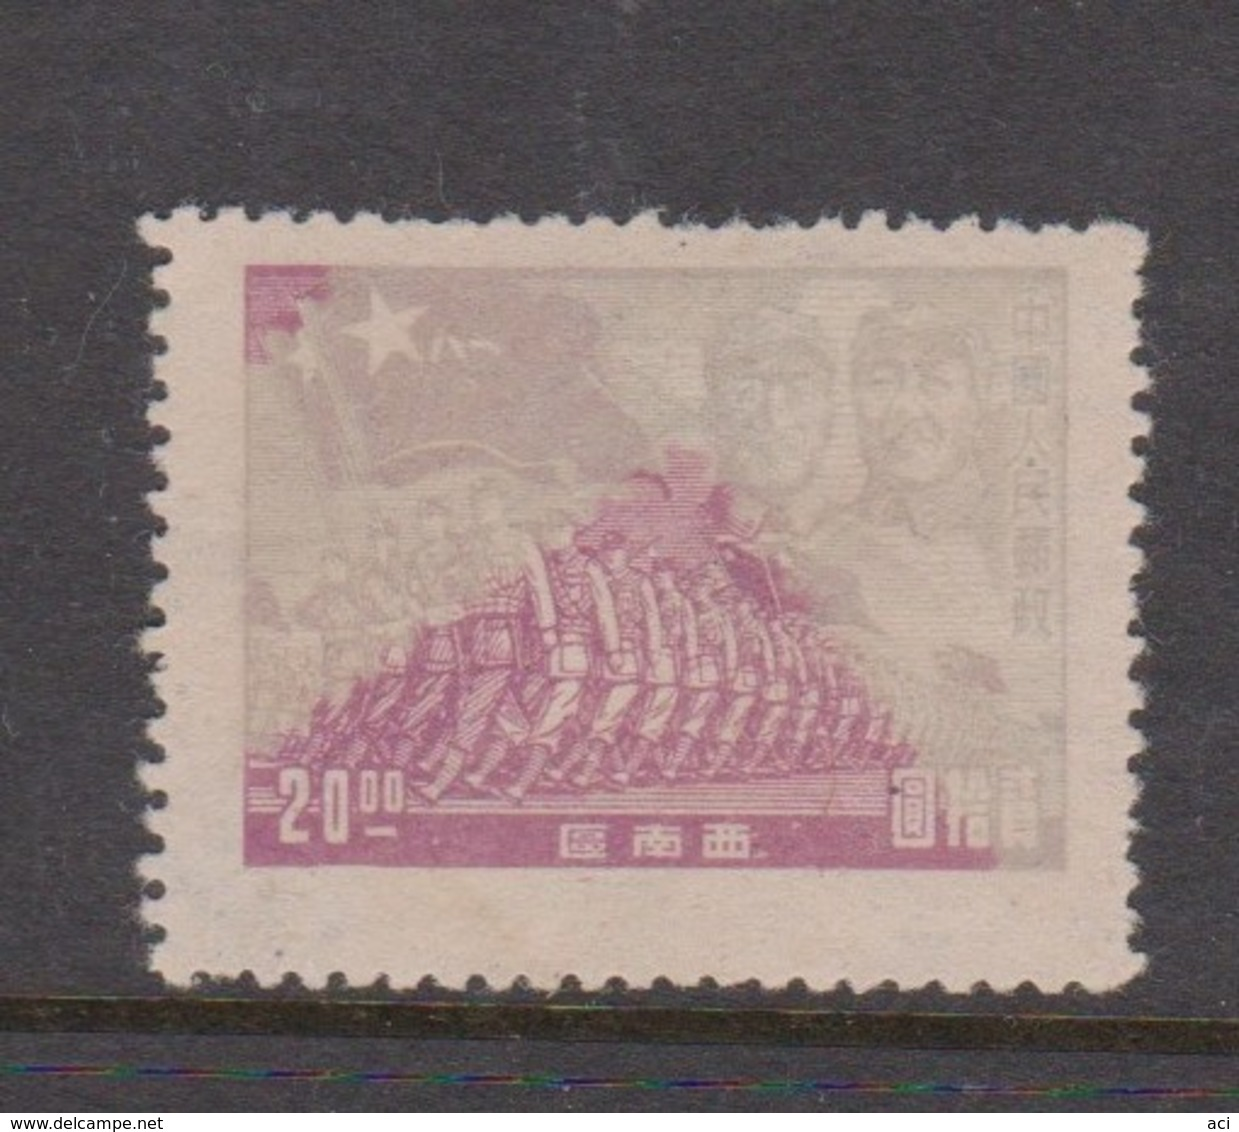 China Southwest China Scott 1949 Troops $ 20 Rose Claret,Original Or Color Faded, - South-Western China 1949-50